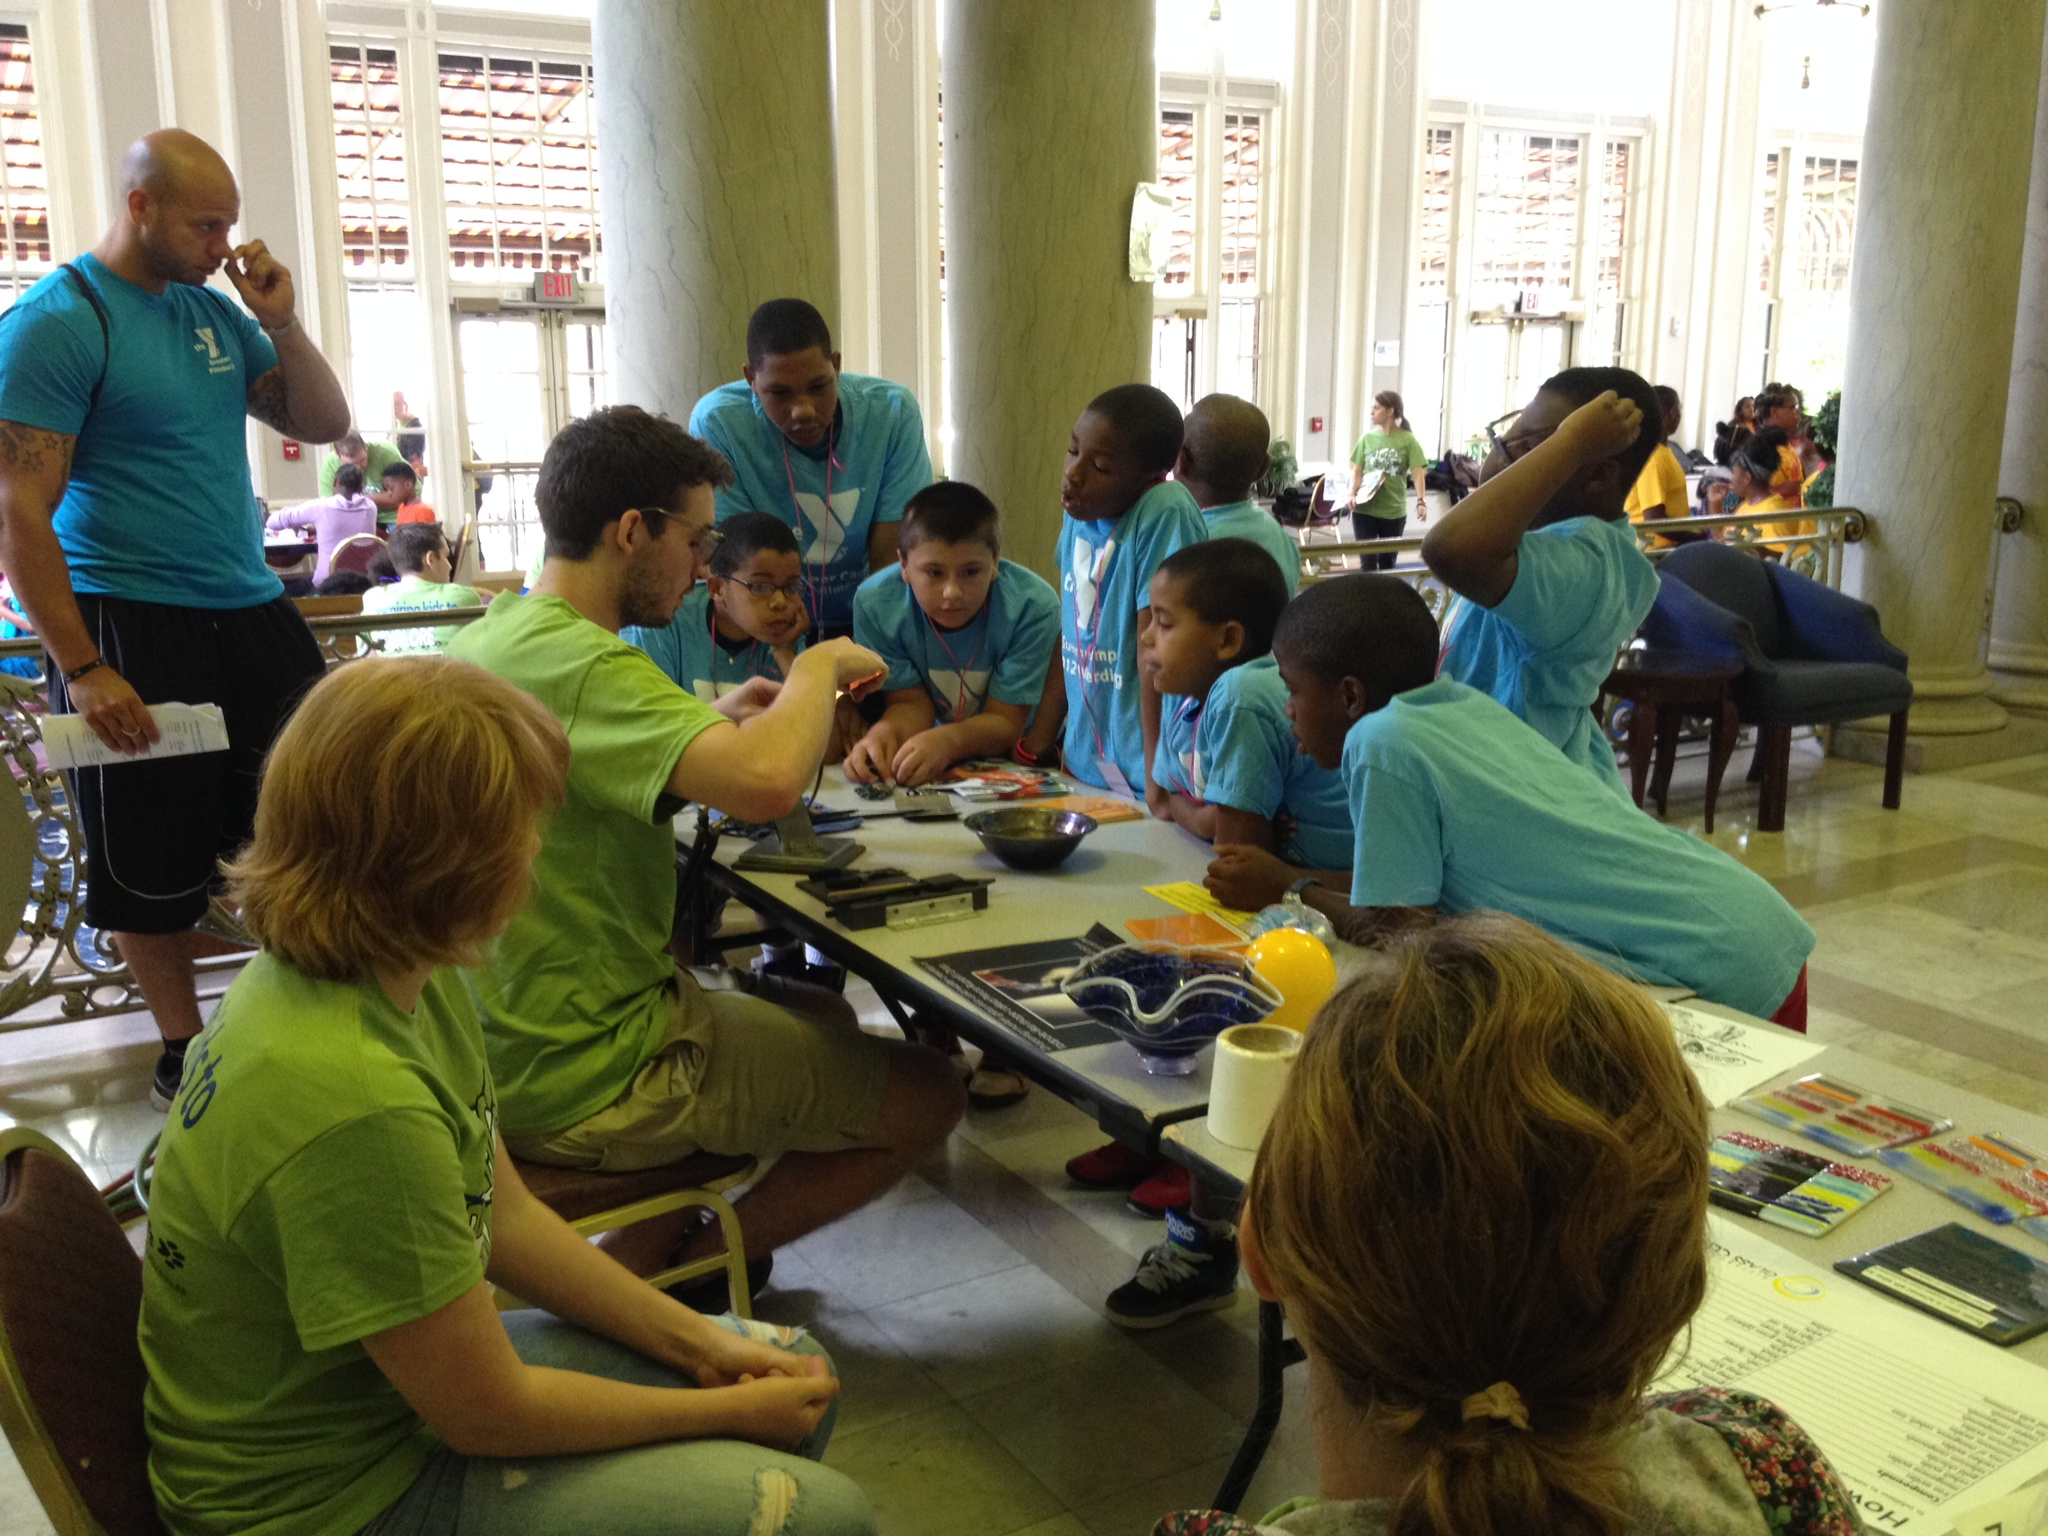 Campers watch in amazement as volunteers teach them about glass blowing.